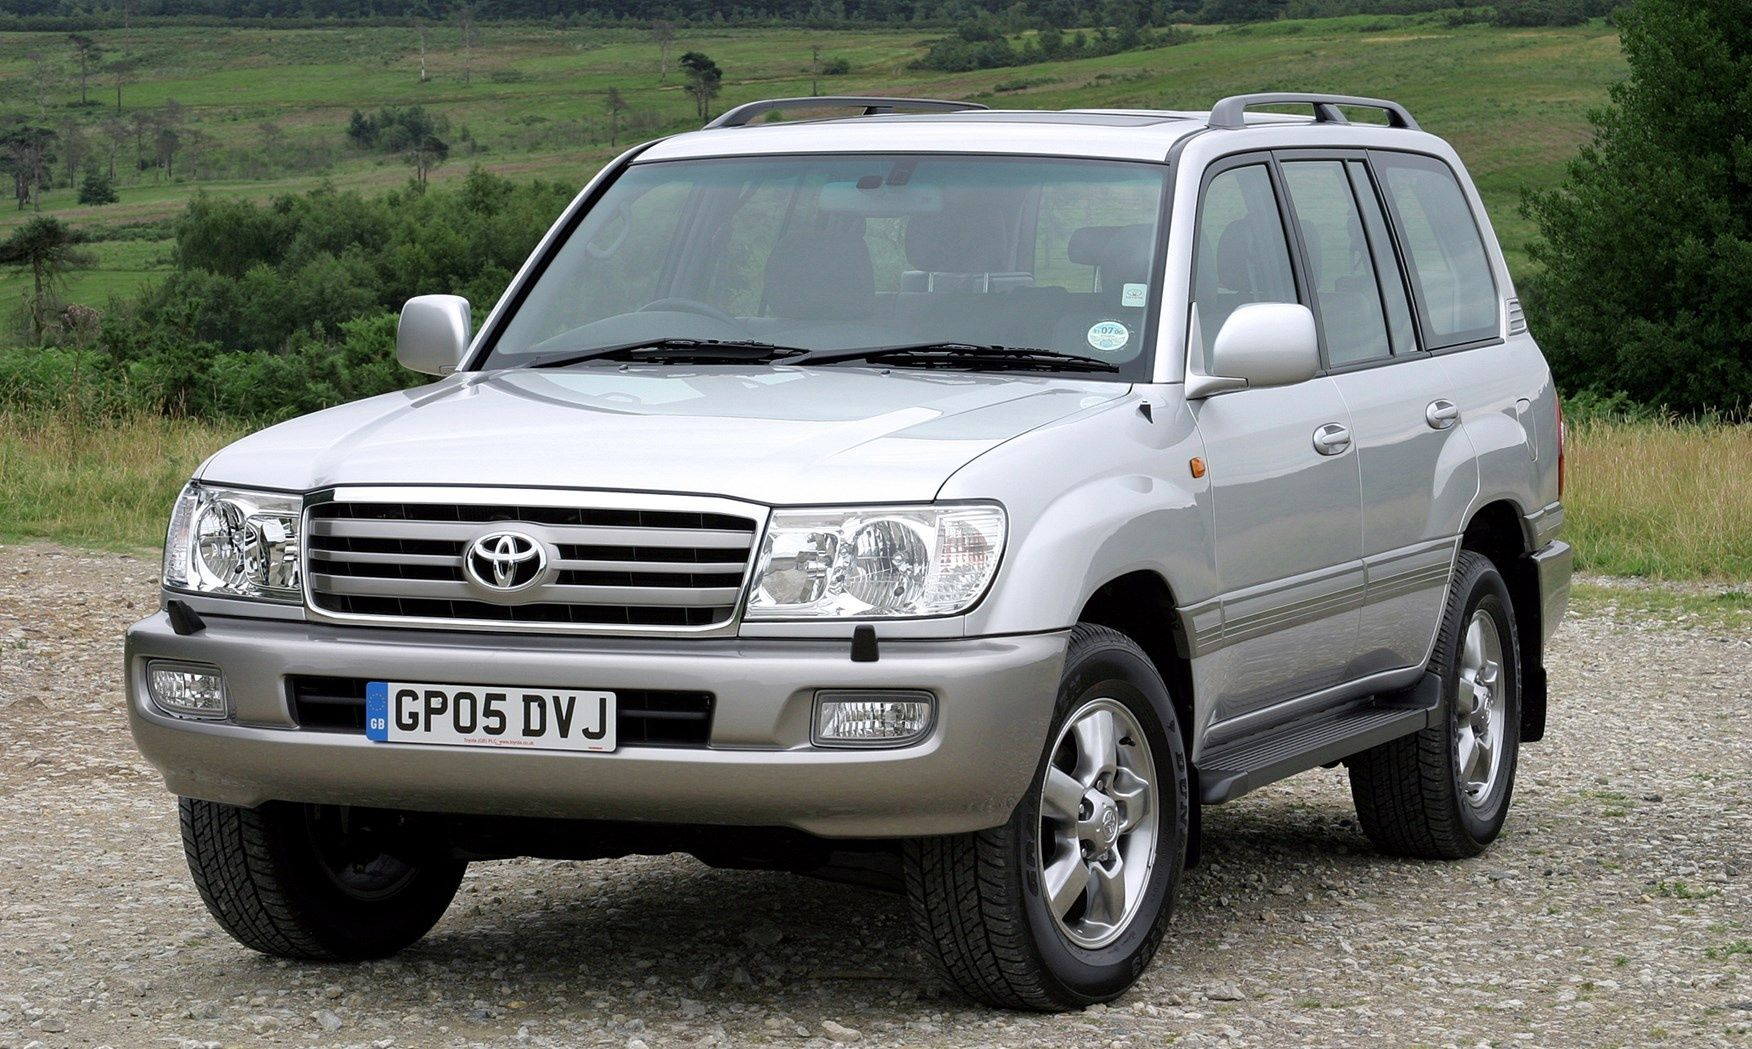 Enjoy Free PDF Download of 2006 Toyota Land Cruiser Electrical Wiring  Diagram (EM0010U).